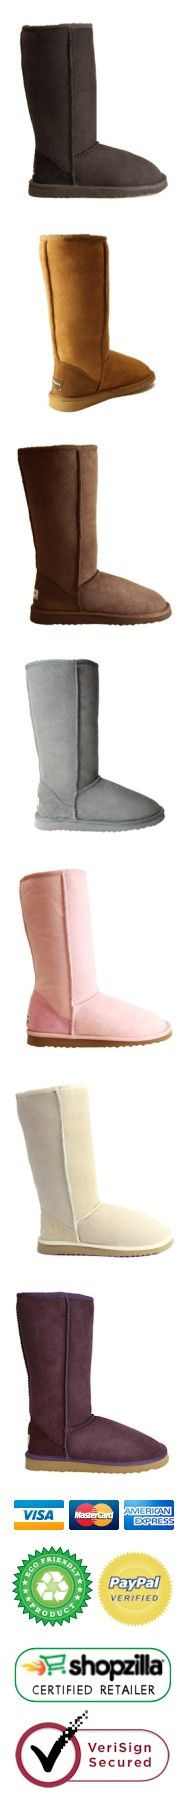 ugg boots promo code